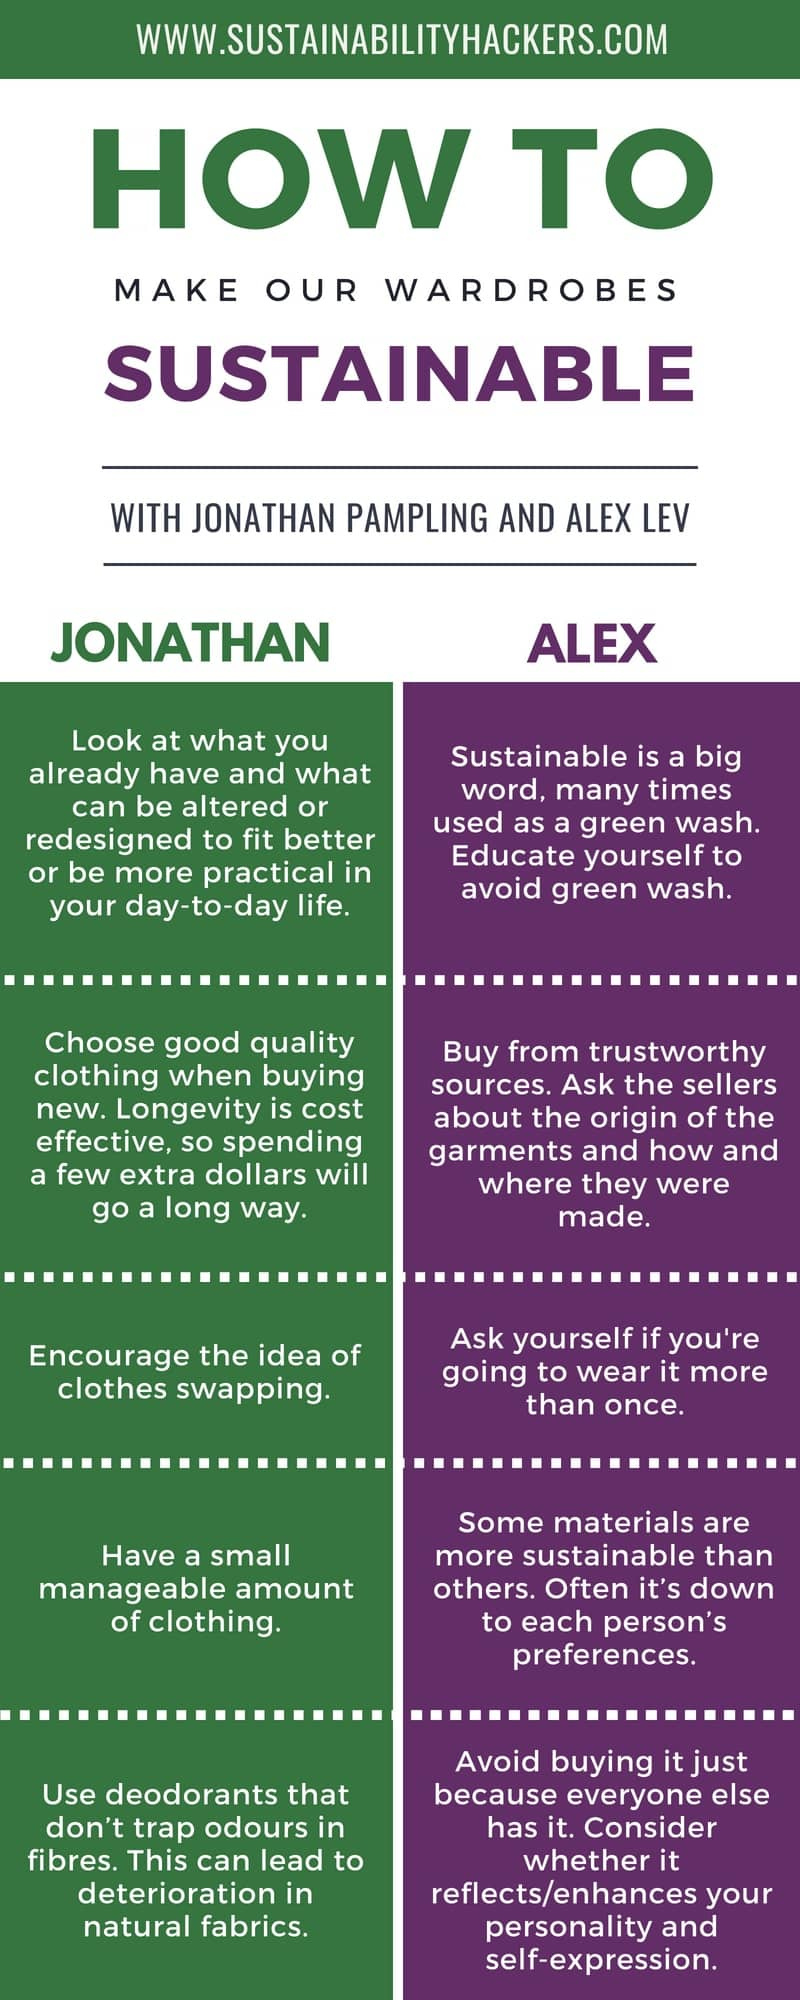 Ways To Stay Stylish And Sustainable - Infographic - Jonathan Pampling - Alex Lev